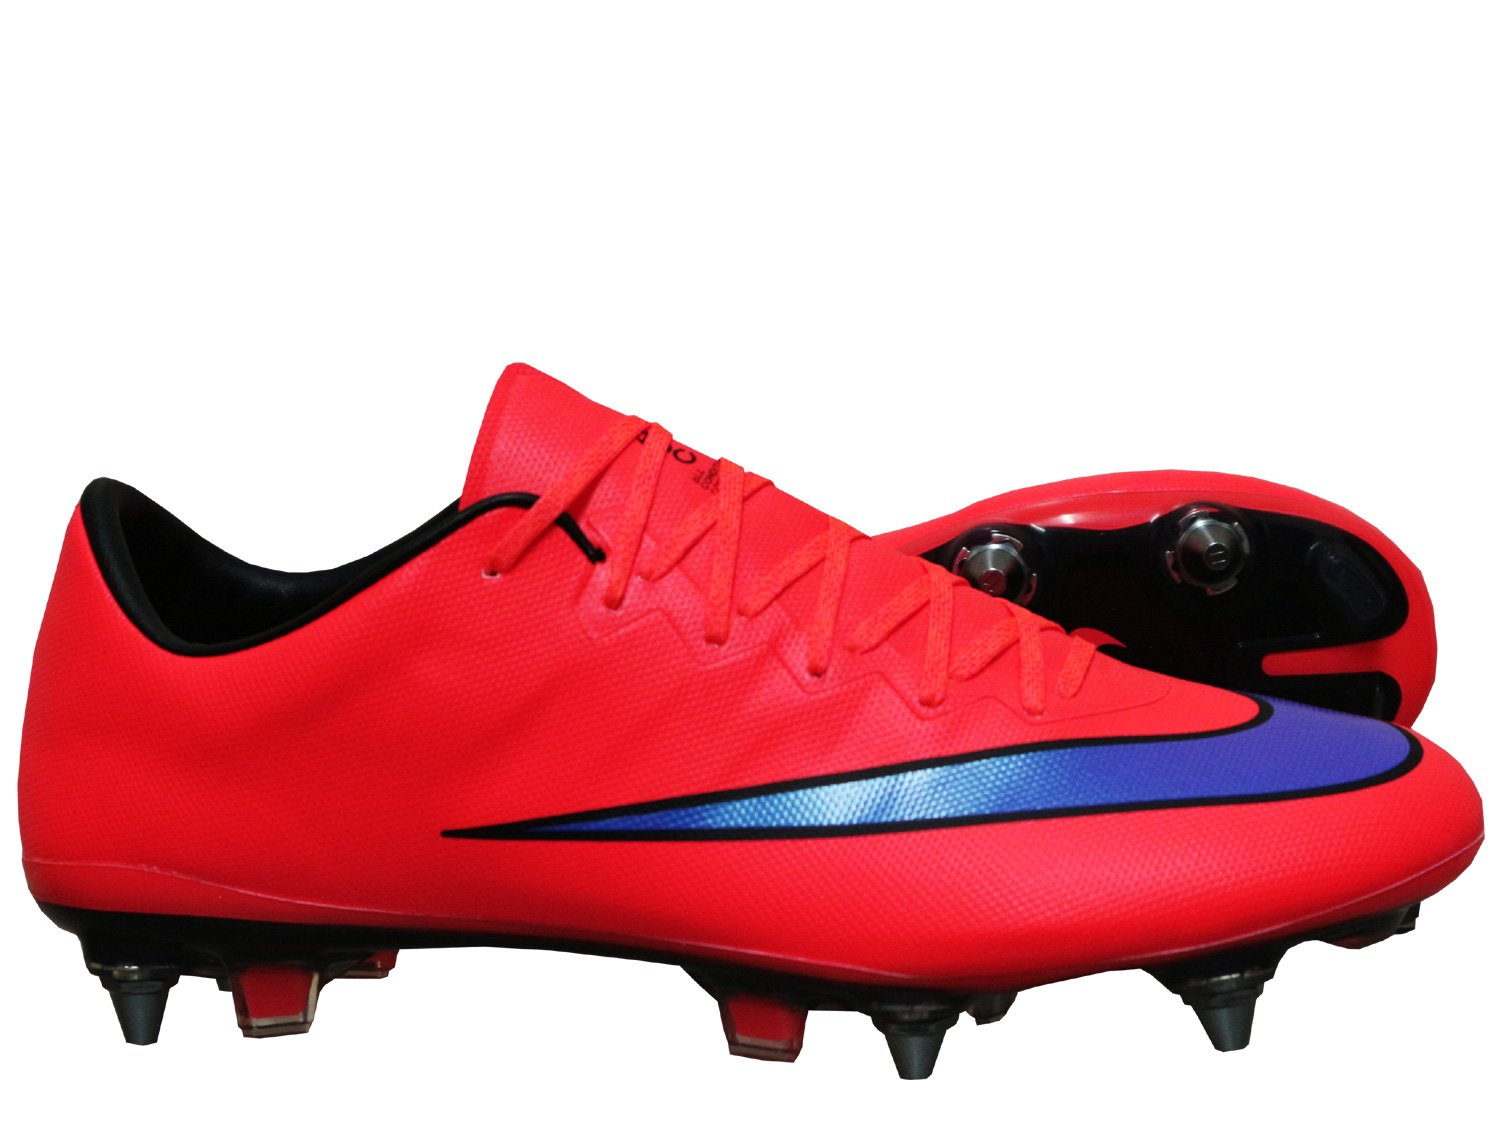 cc7320abafcb Nike Mercurial Vapor X SG Pro Football Boots Cleats - Football Shoe Red   Amazon.co.uk  Sports   Outdoors